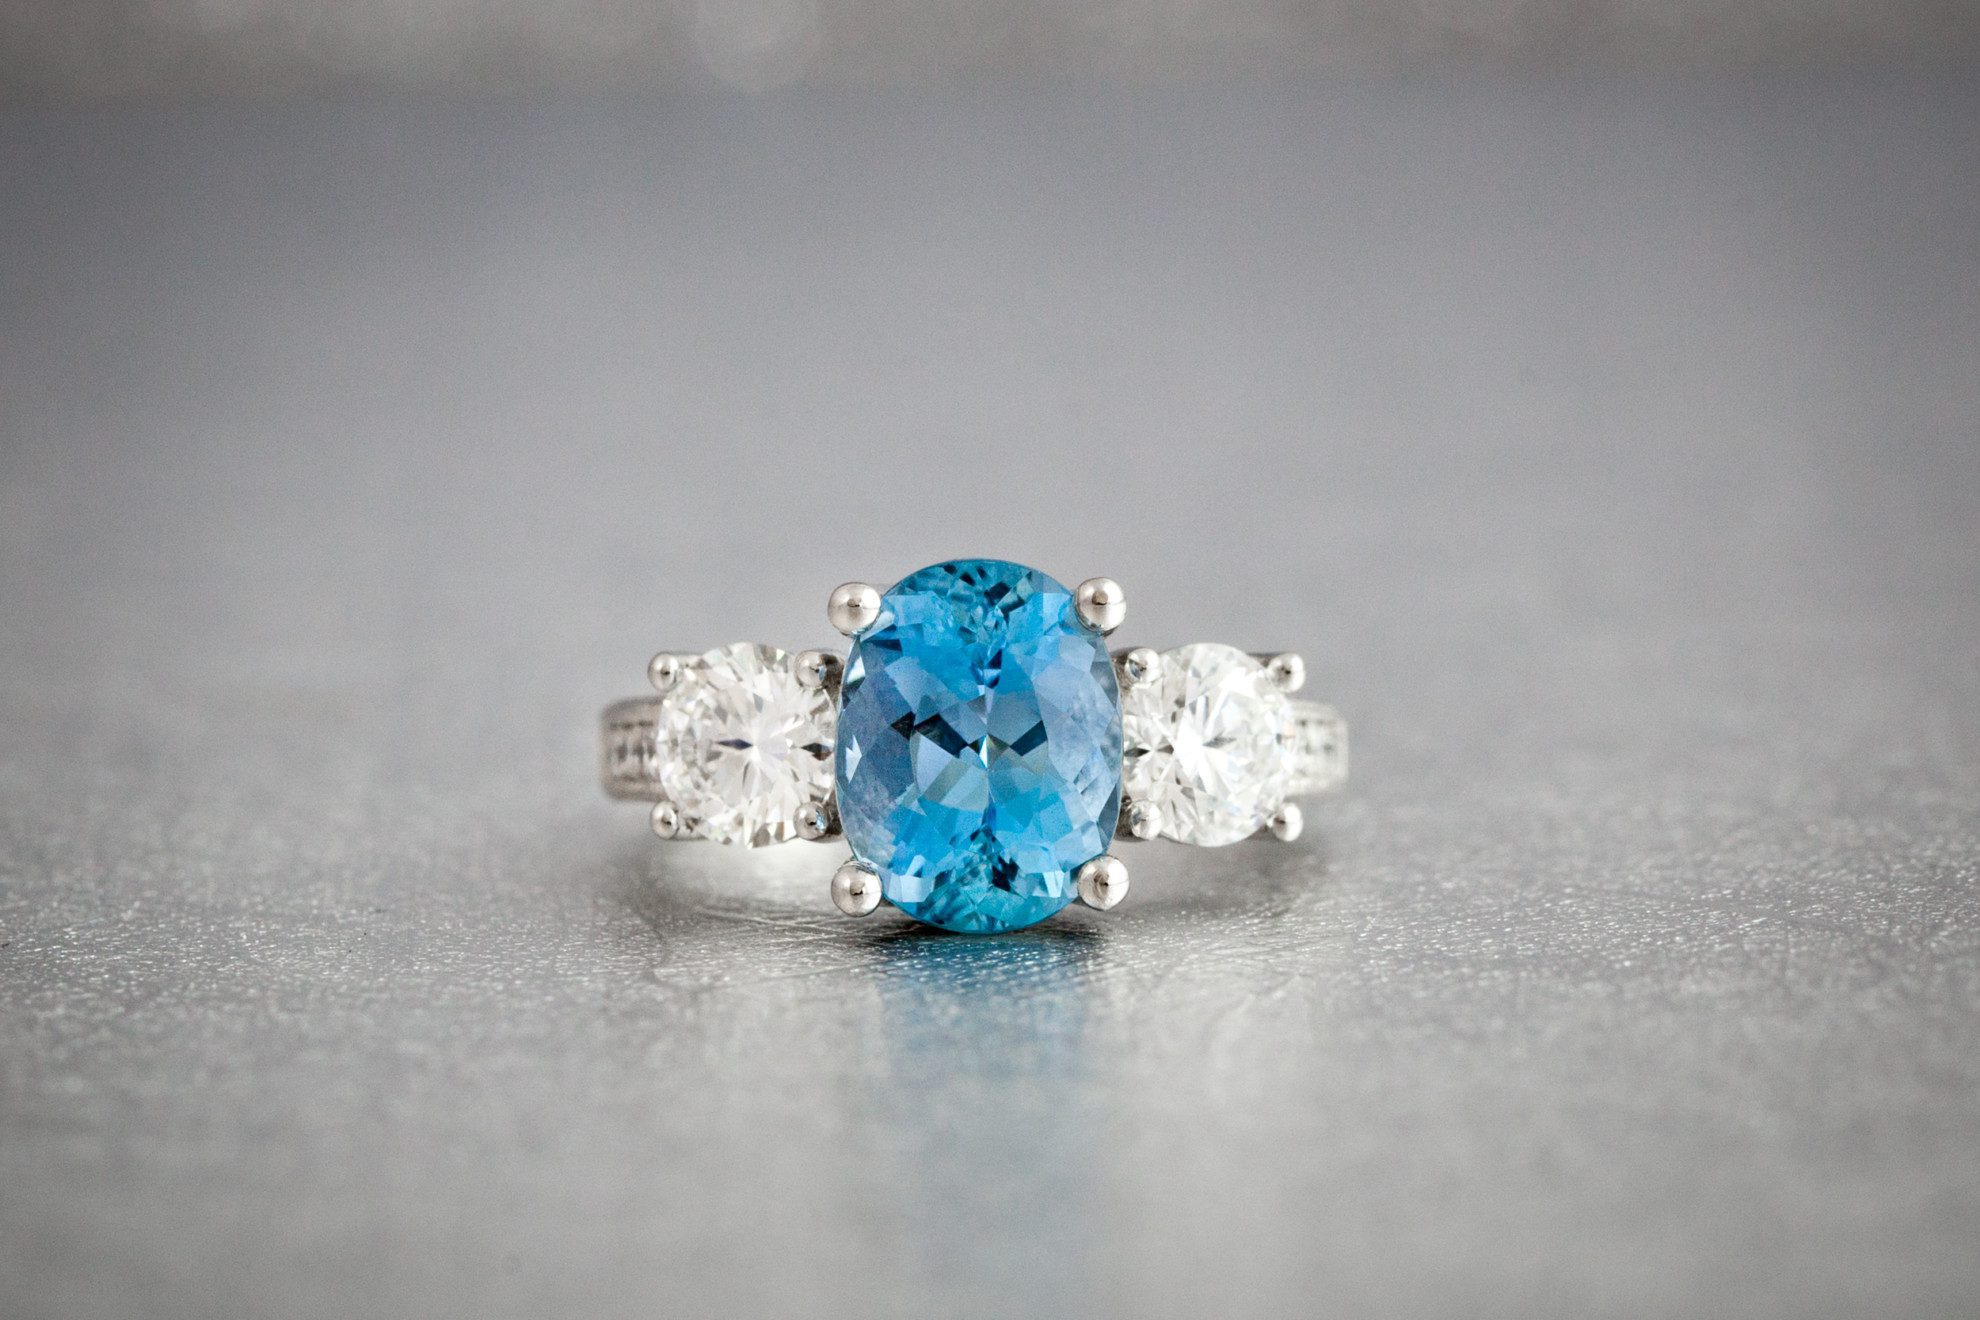 The Best Colored Gemstones For Your Engagement Ring